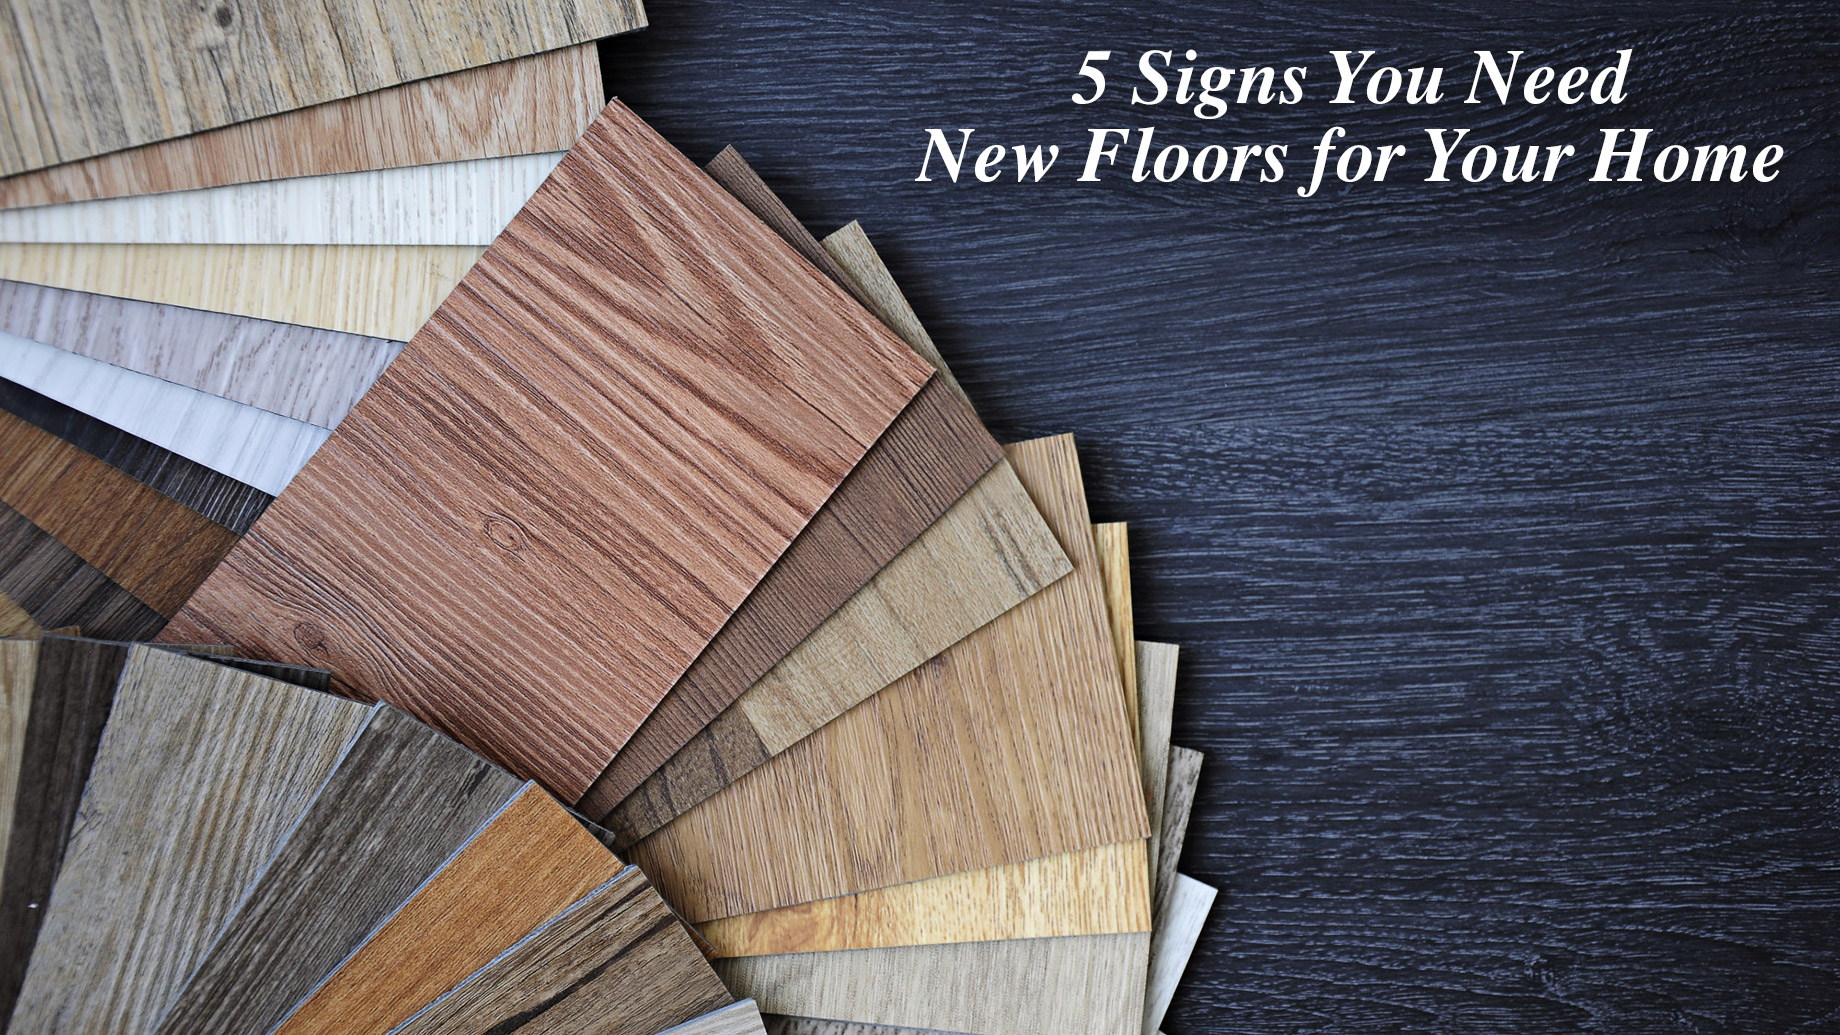 5 Signs You Need New Floors for Your Home